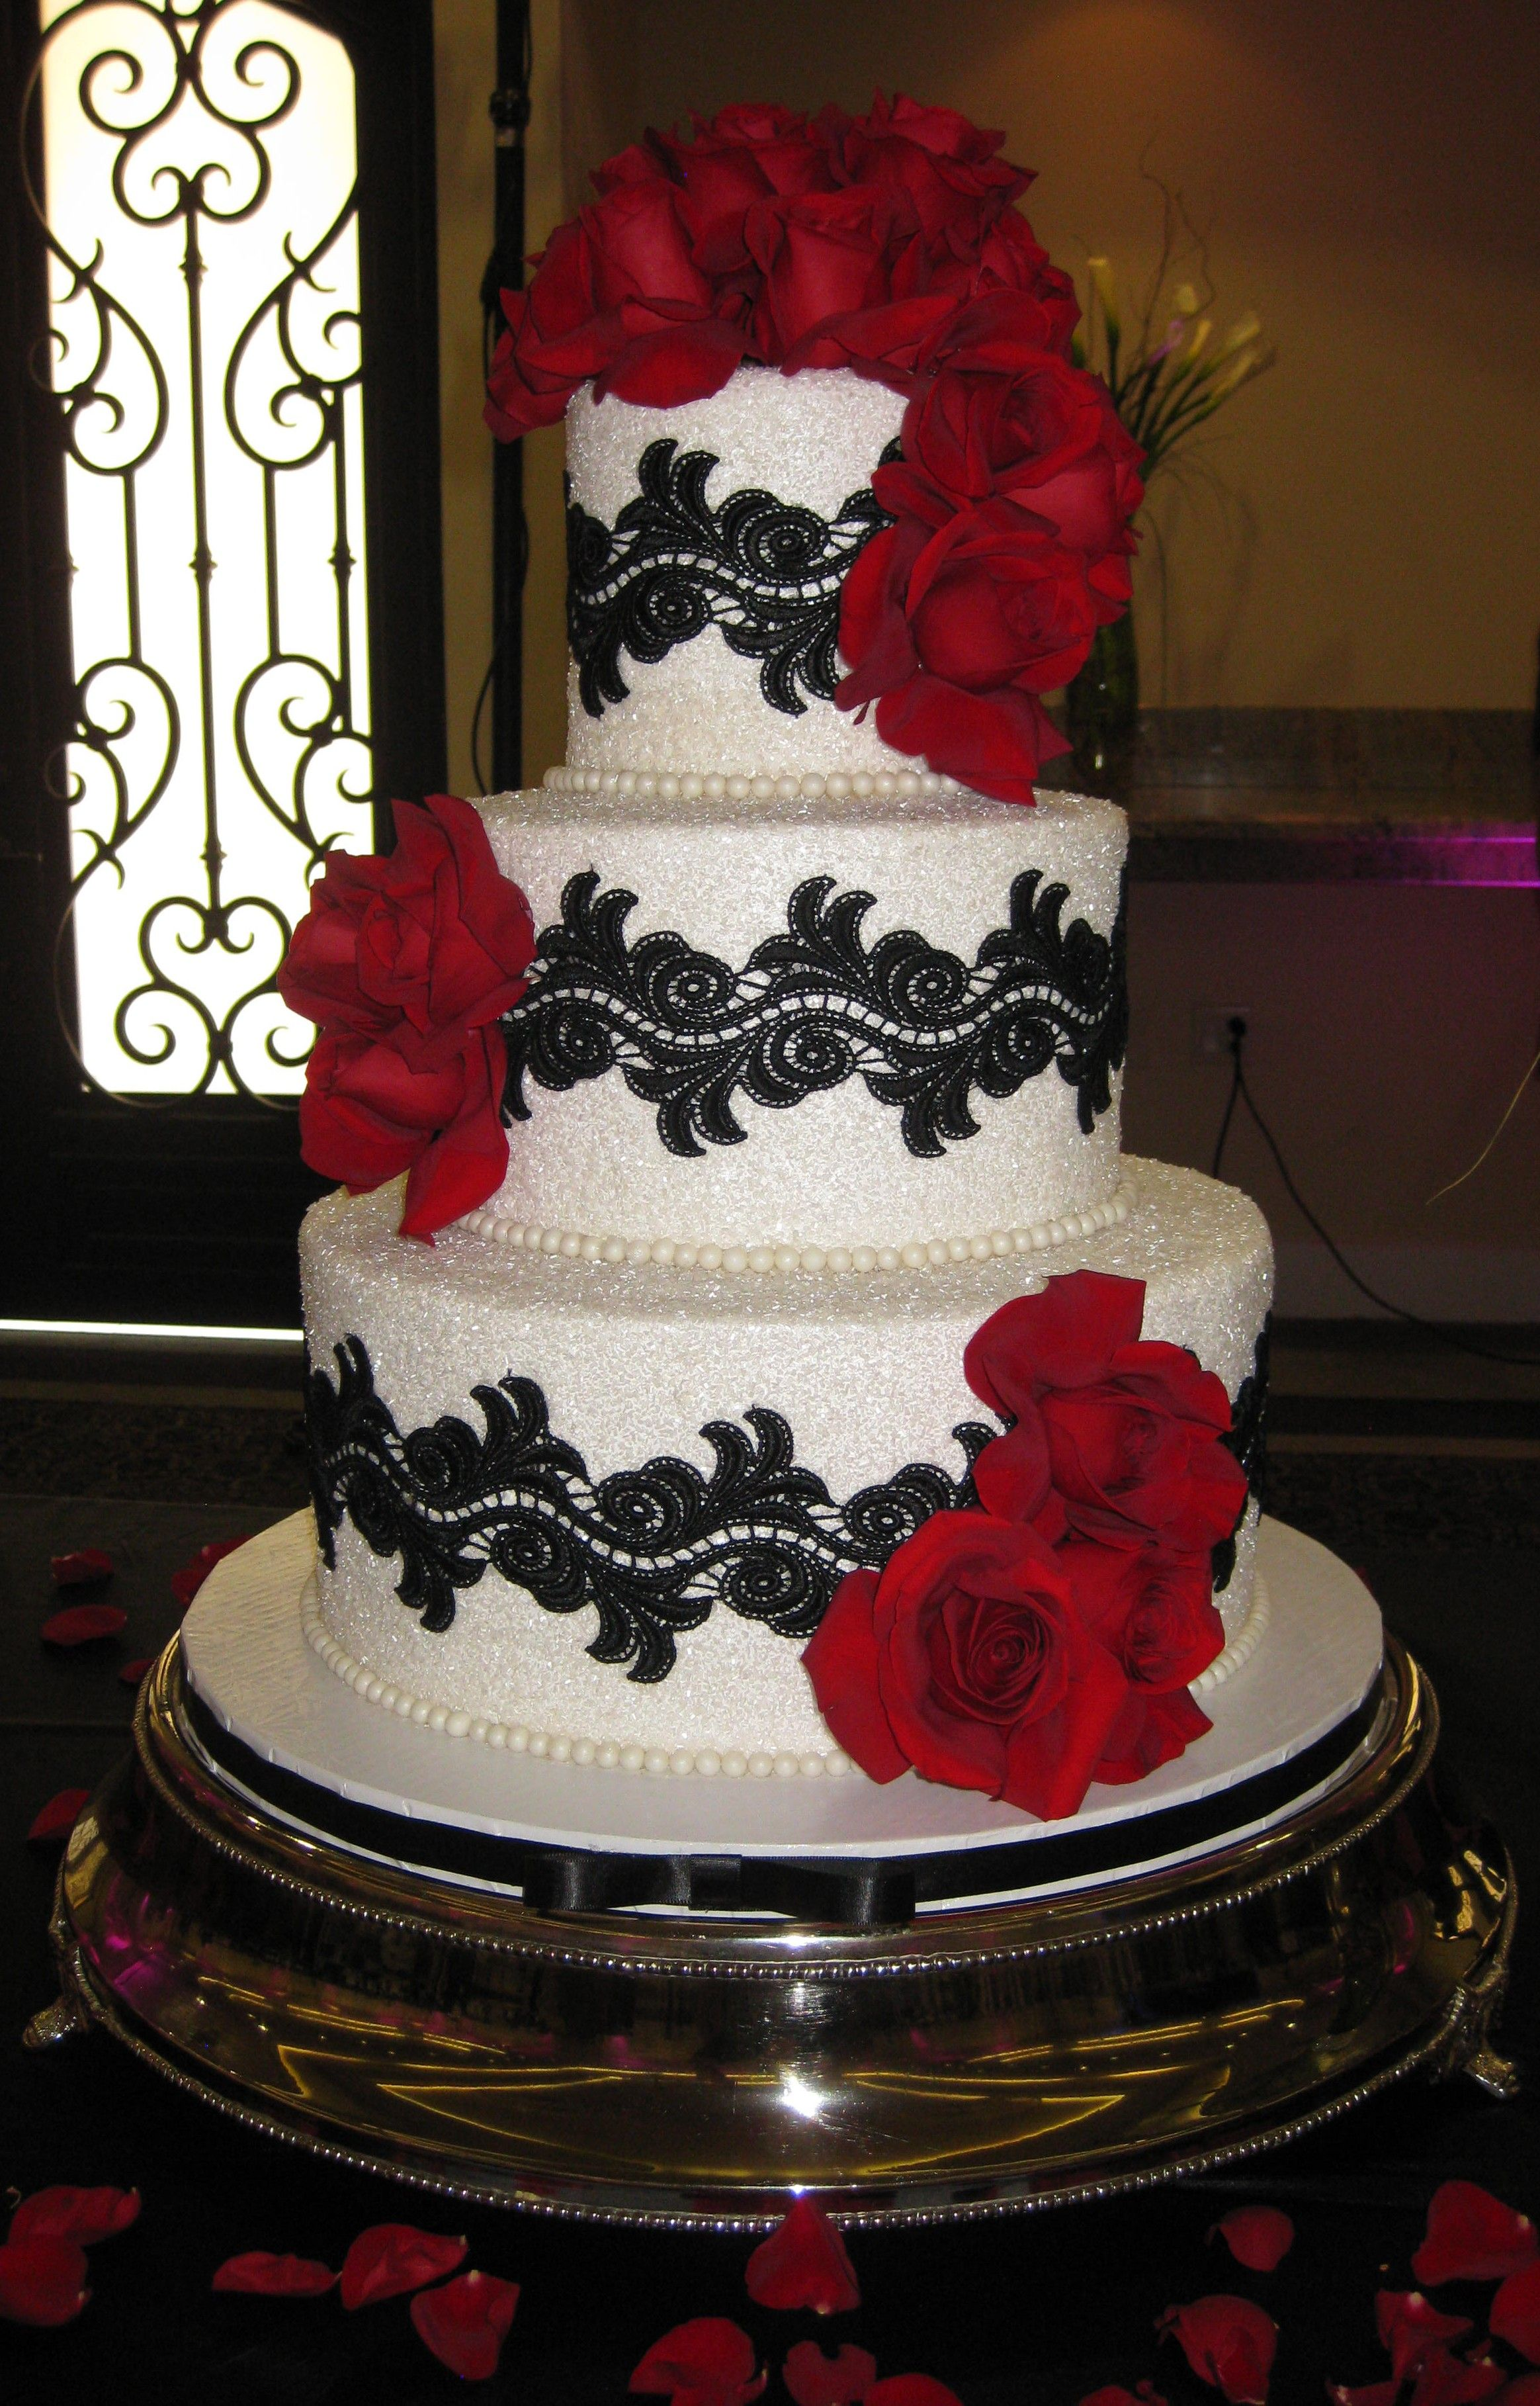 Red and black wedding decor  Black white and red wedding Cake  I DO   Pinterest  Red wedding